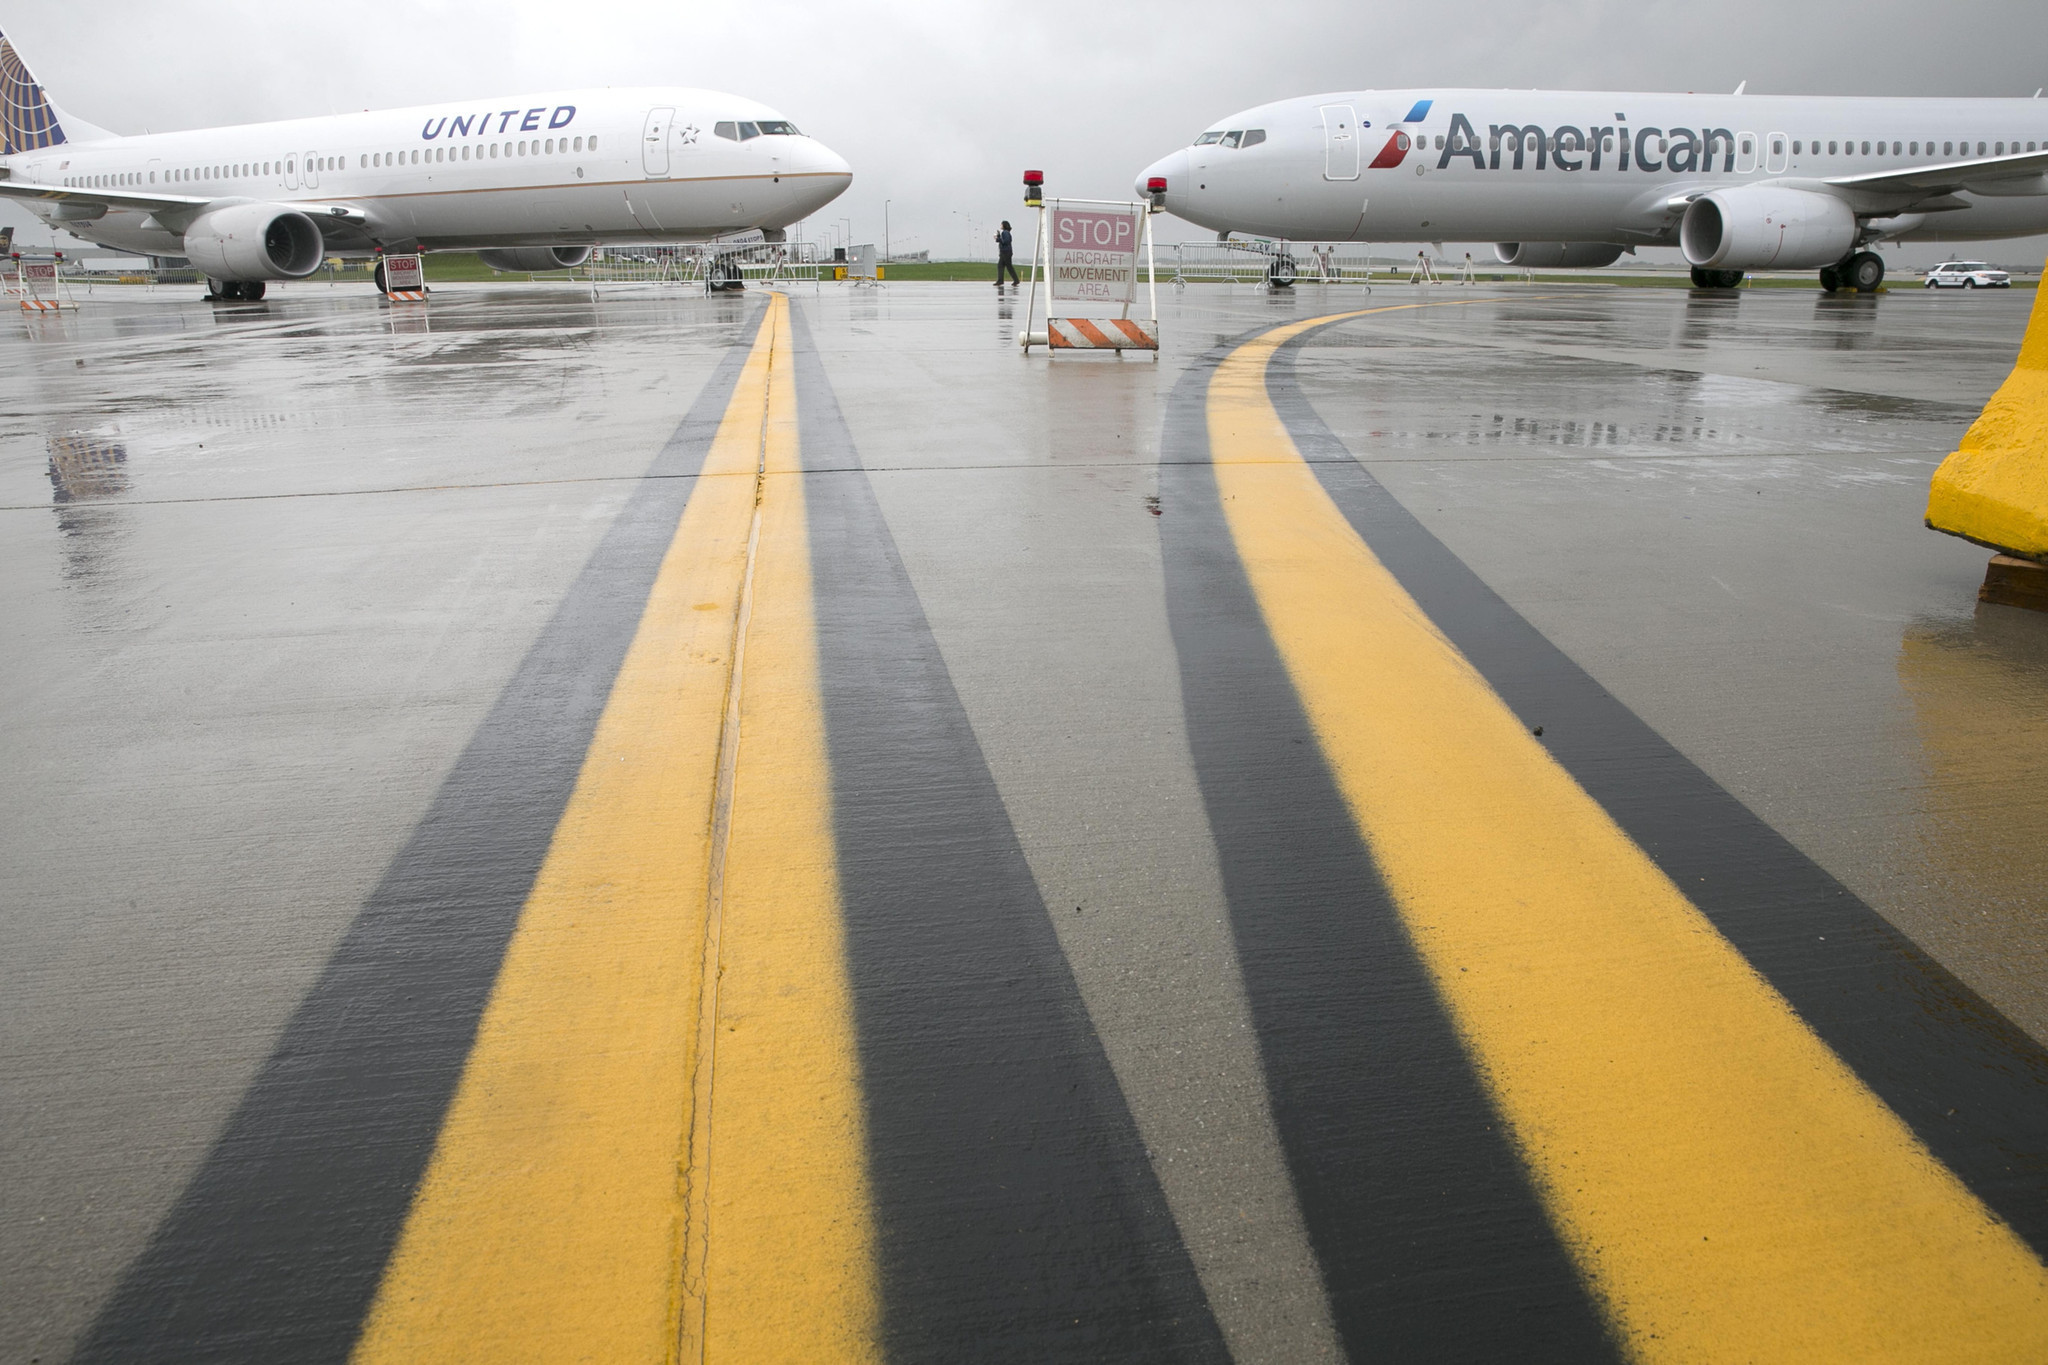 U.S. travel group calls for aviation changes